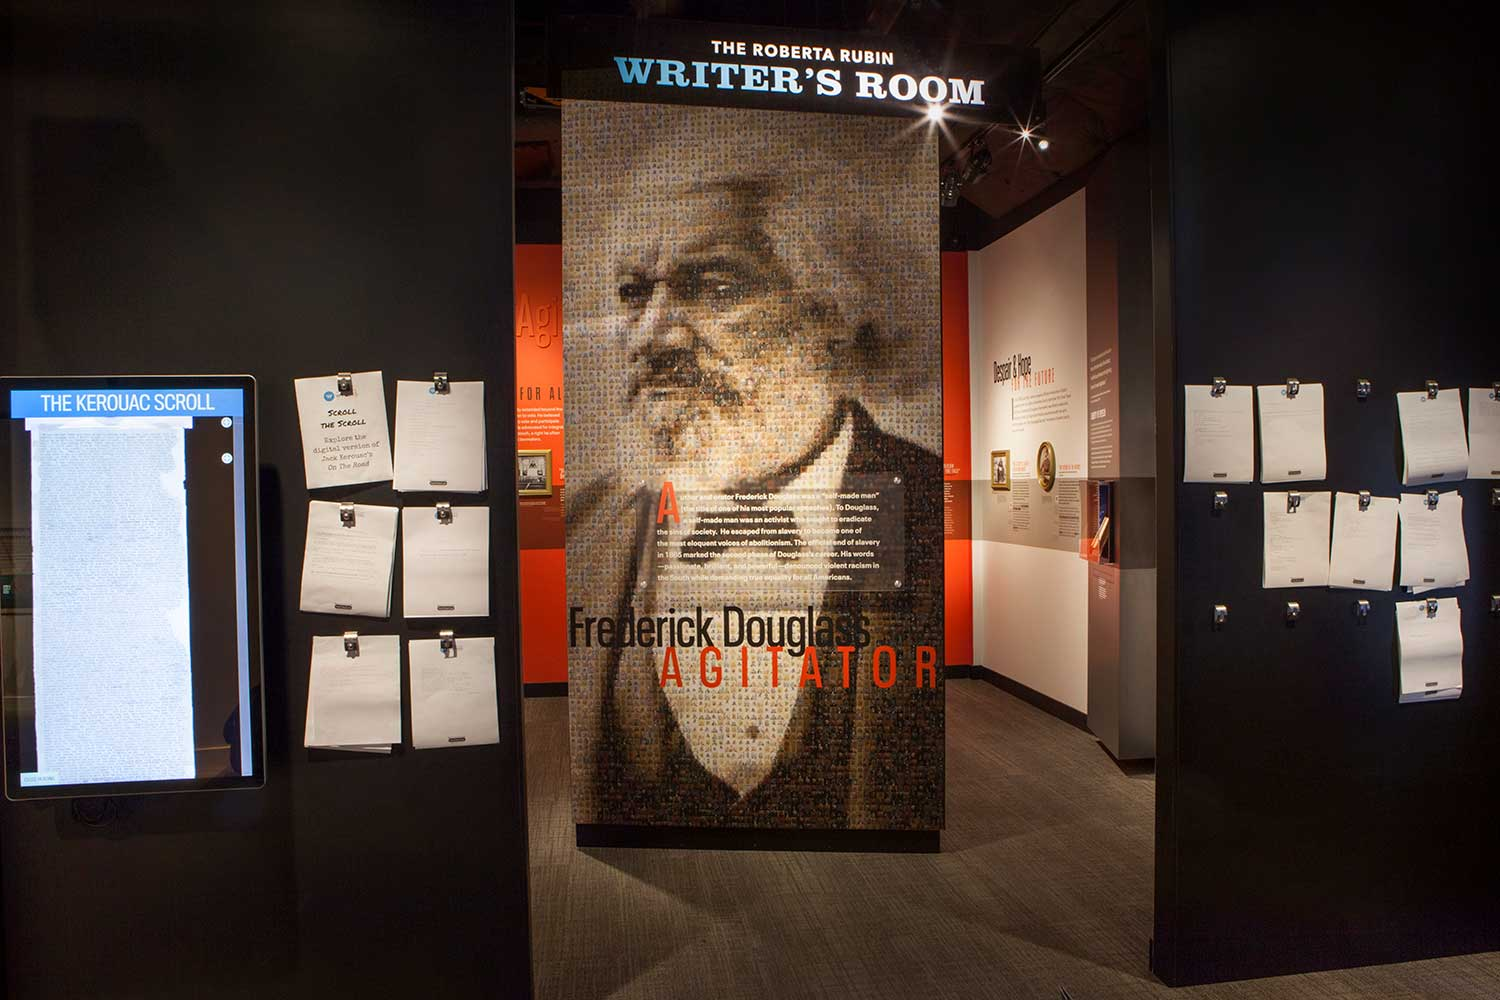 Frederick Douglass, Agitator!